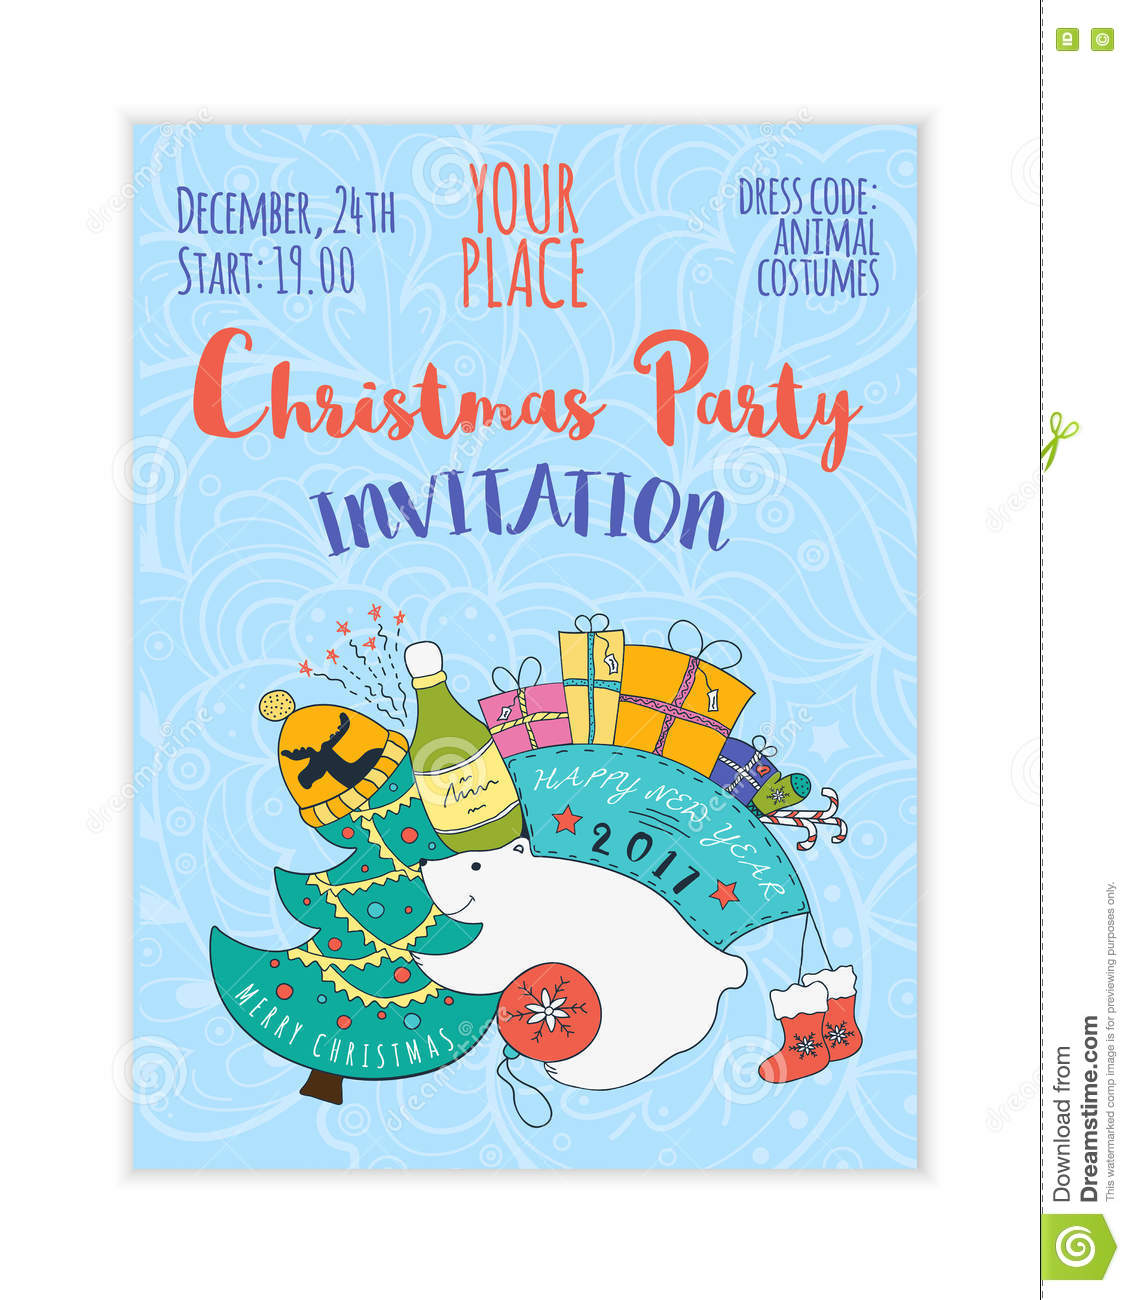 Kids 2017 Christmas Party Invitation Stock Vector - Image: 75265527